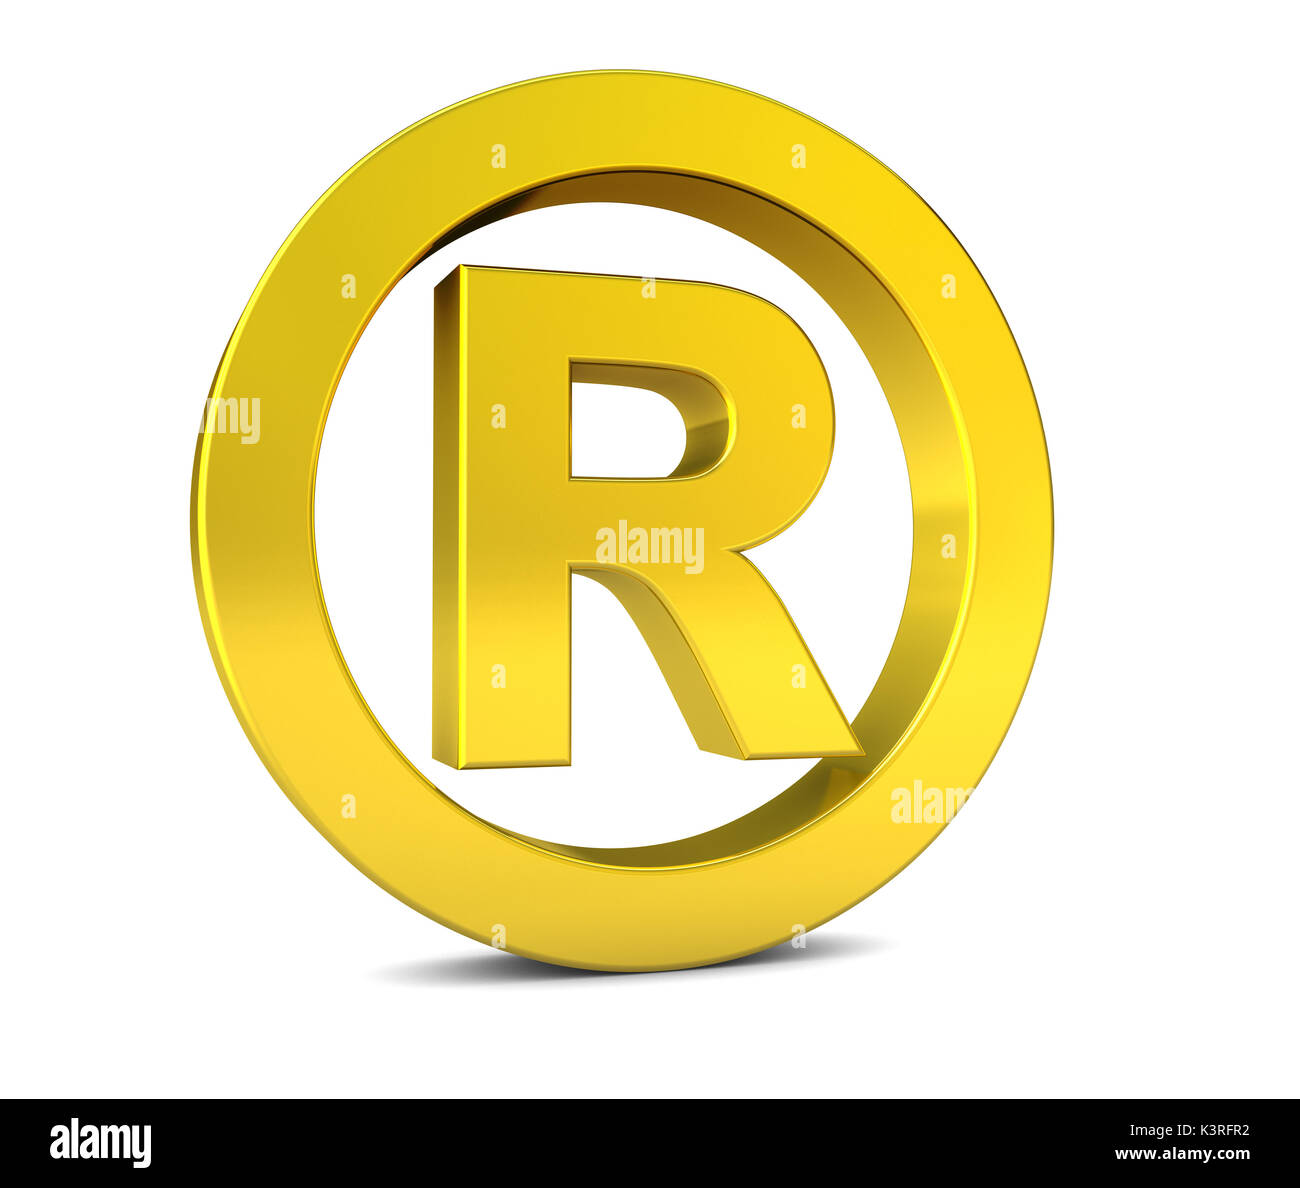 Registered trademark symbol stock photos registered trademark business registered trademark golden sign and symbol 3d illustration icon on white background stock biocorpaavc Gallery